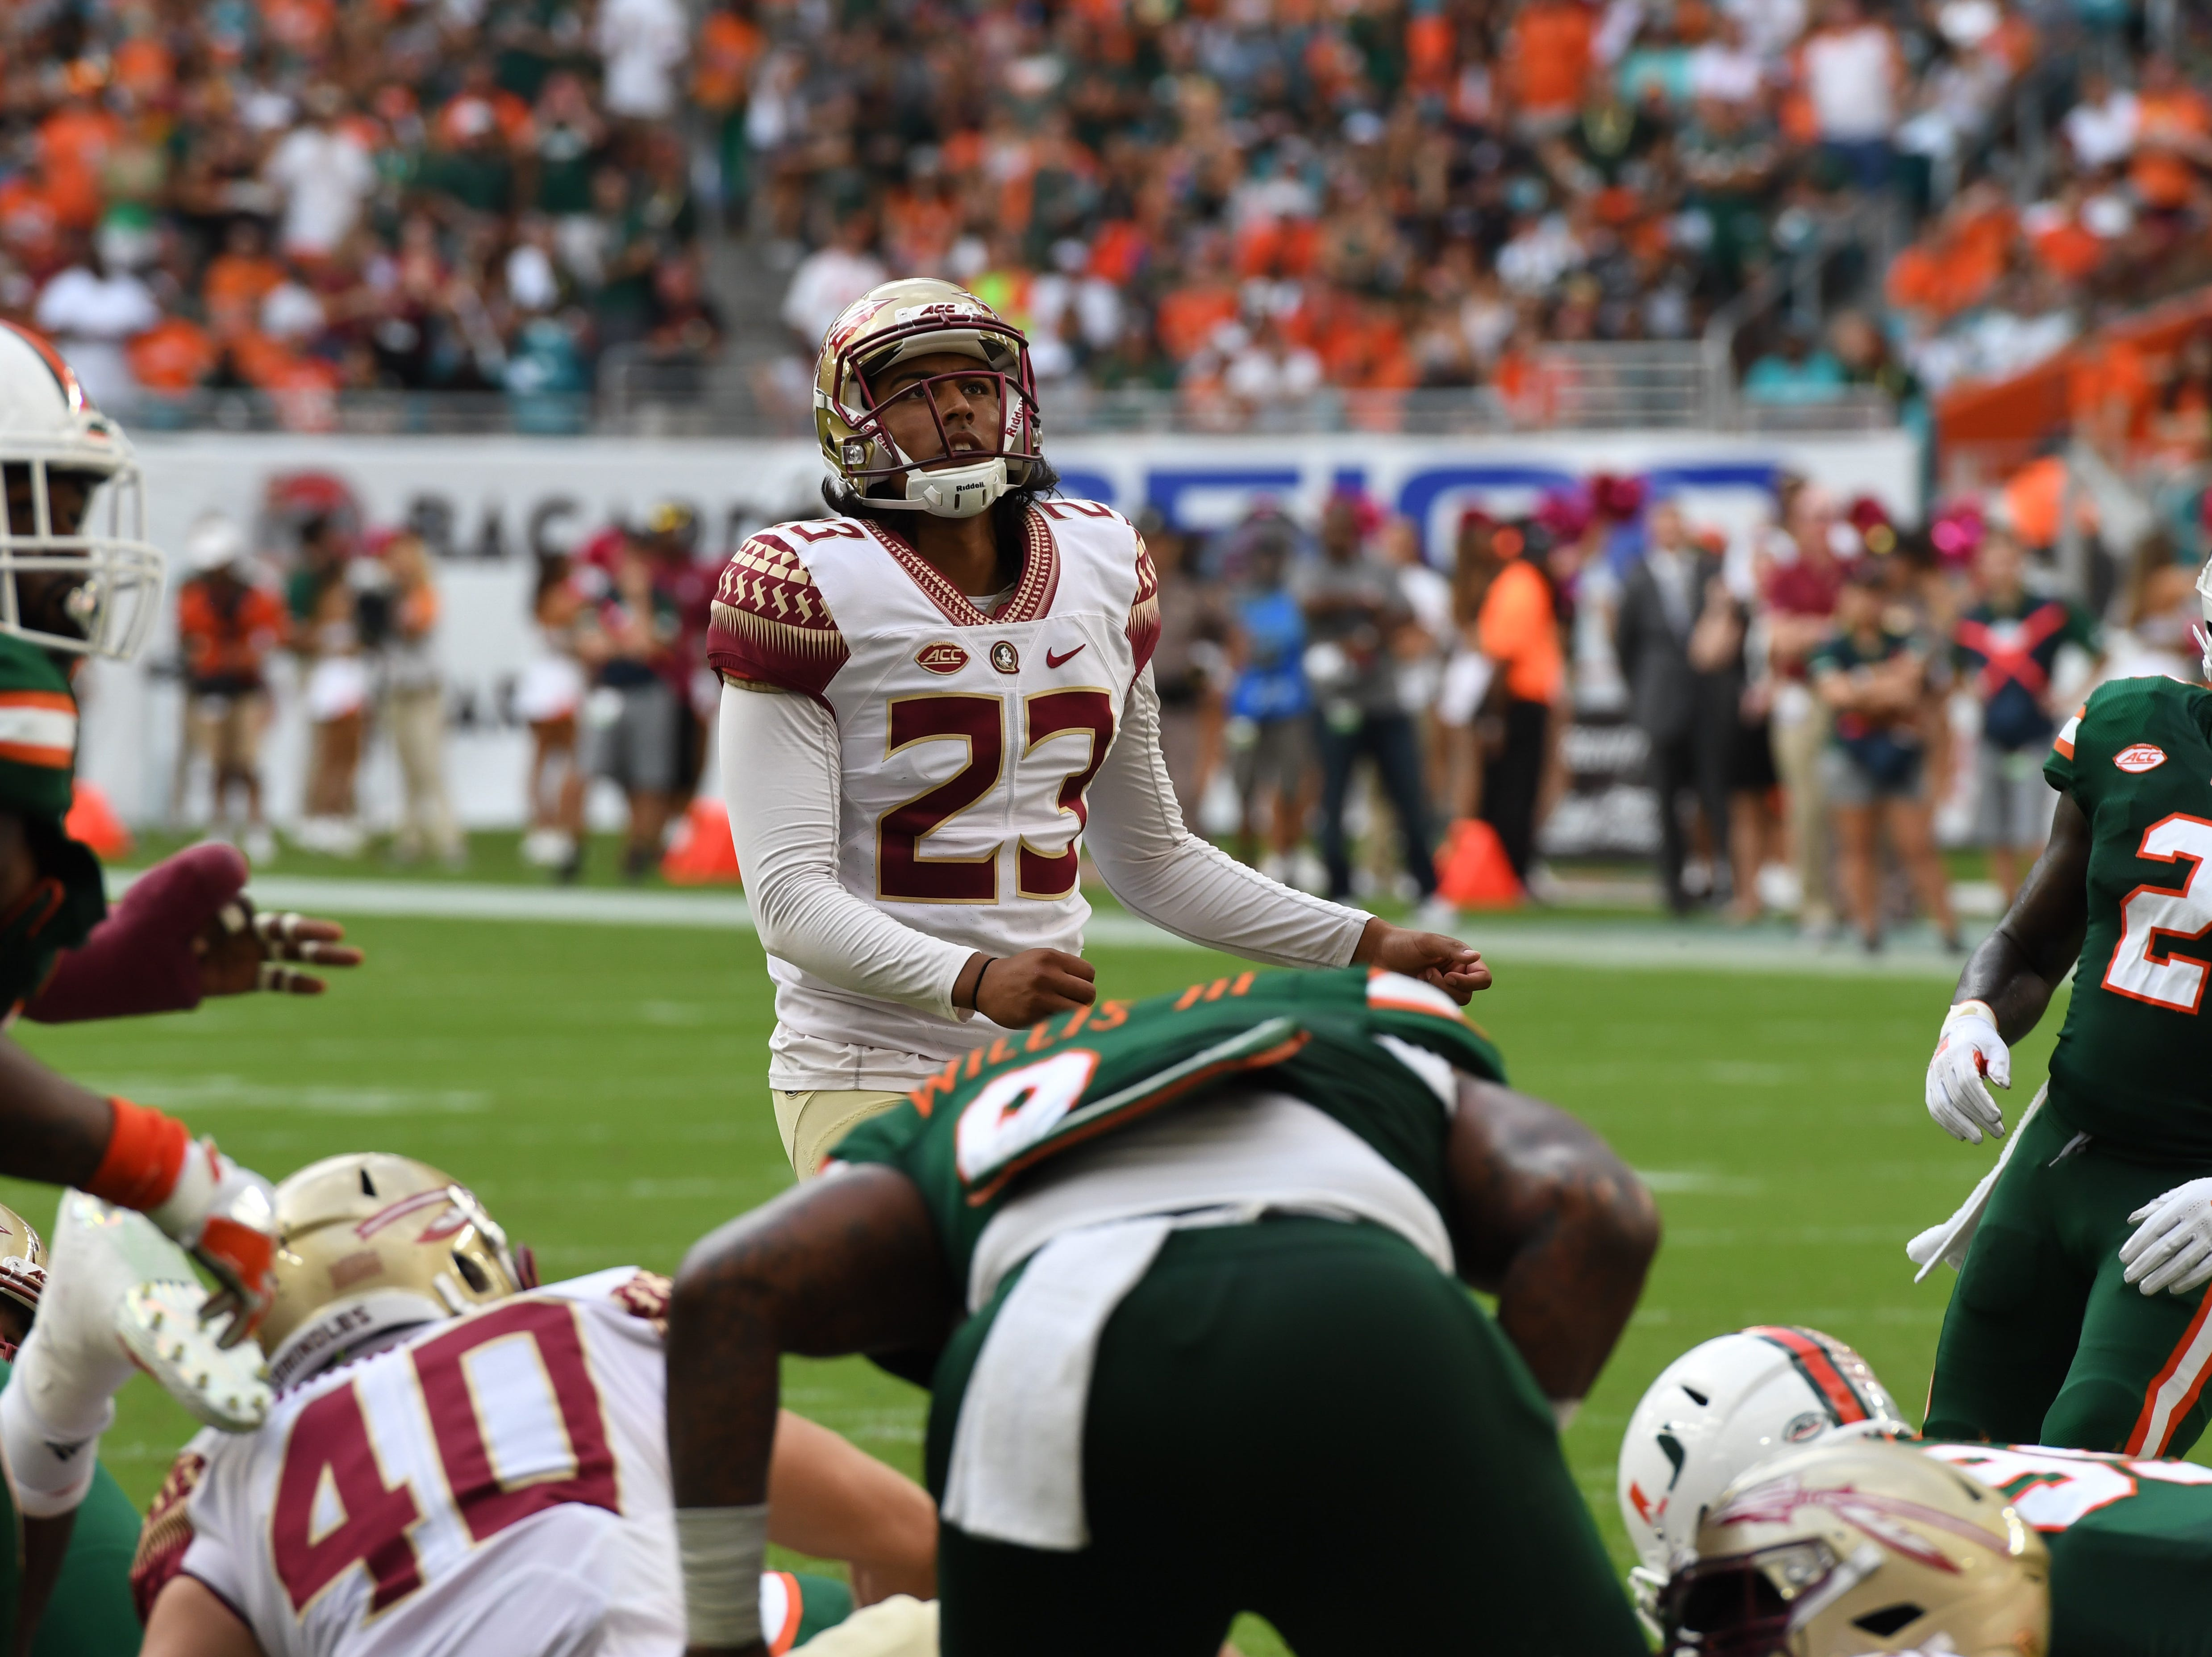 FSU junior kicker Ricky Aguayo (23) nailing a field goal in the second quarter of FSU's game against Miami at the Hard Rock Stadium on October 6th 2018.